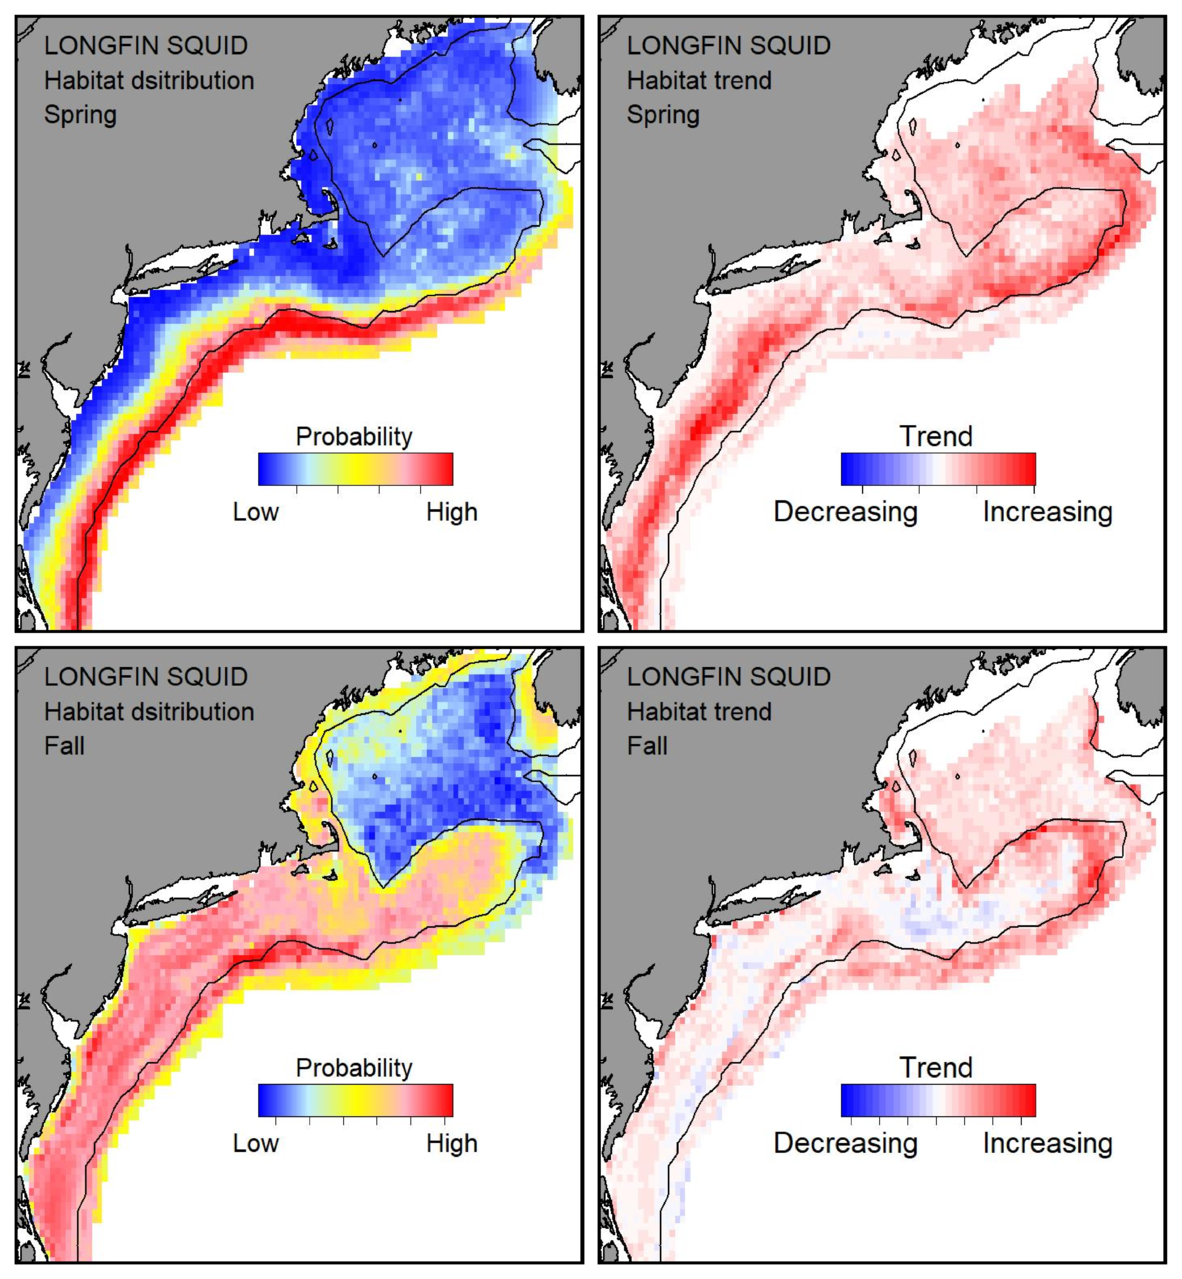 Probable habitat distribution for longfin squid showing the highest concentration and increasing trend in the Gulf of Maine during the spring. Bottom row: Probable habitat distribution for longfin squid showing the highest concentration and increasing trend in the Gulf of Maine during the fall.